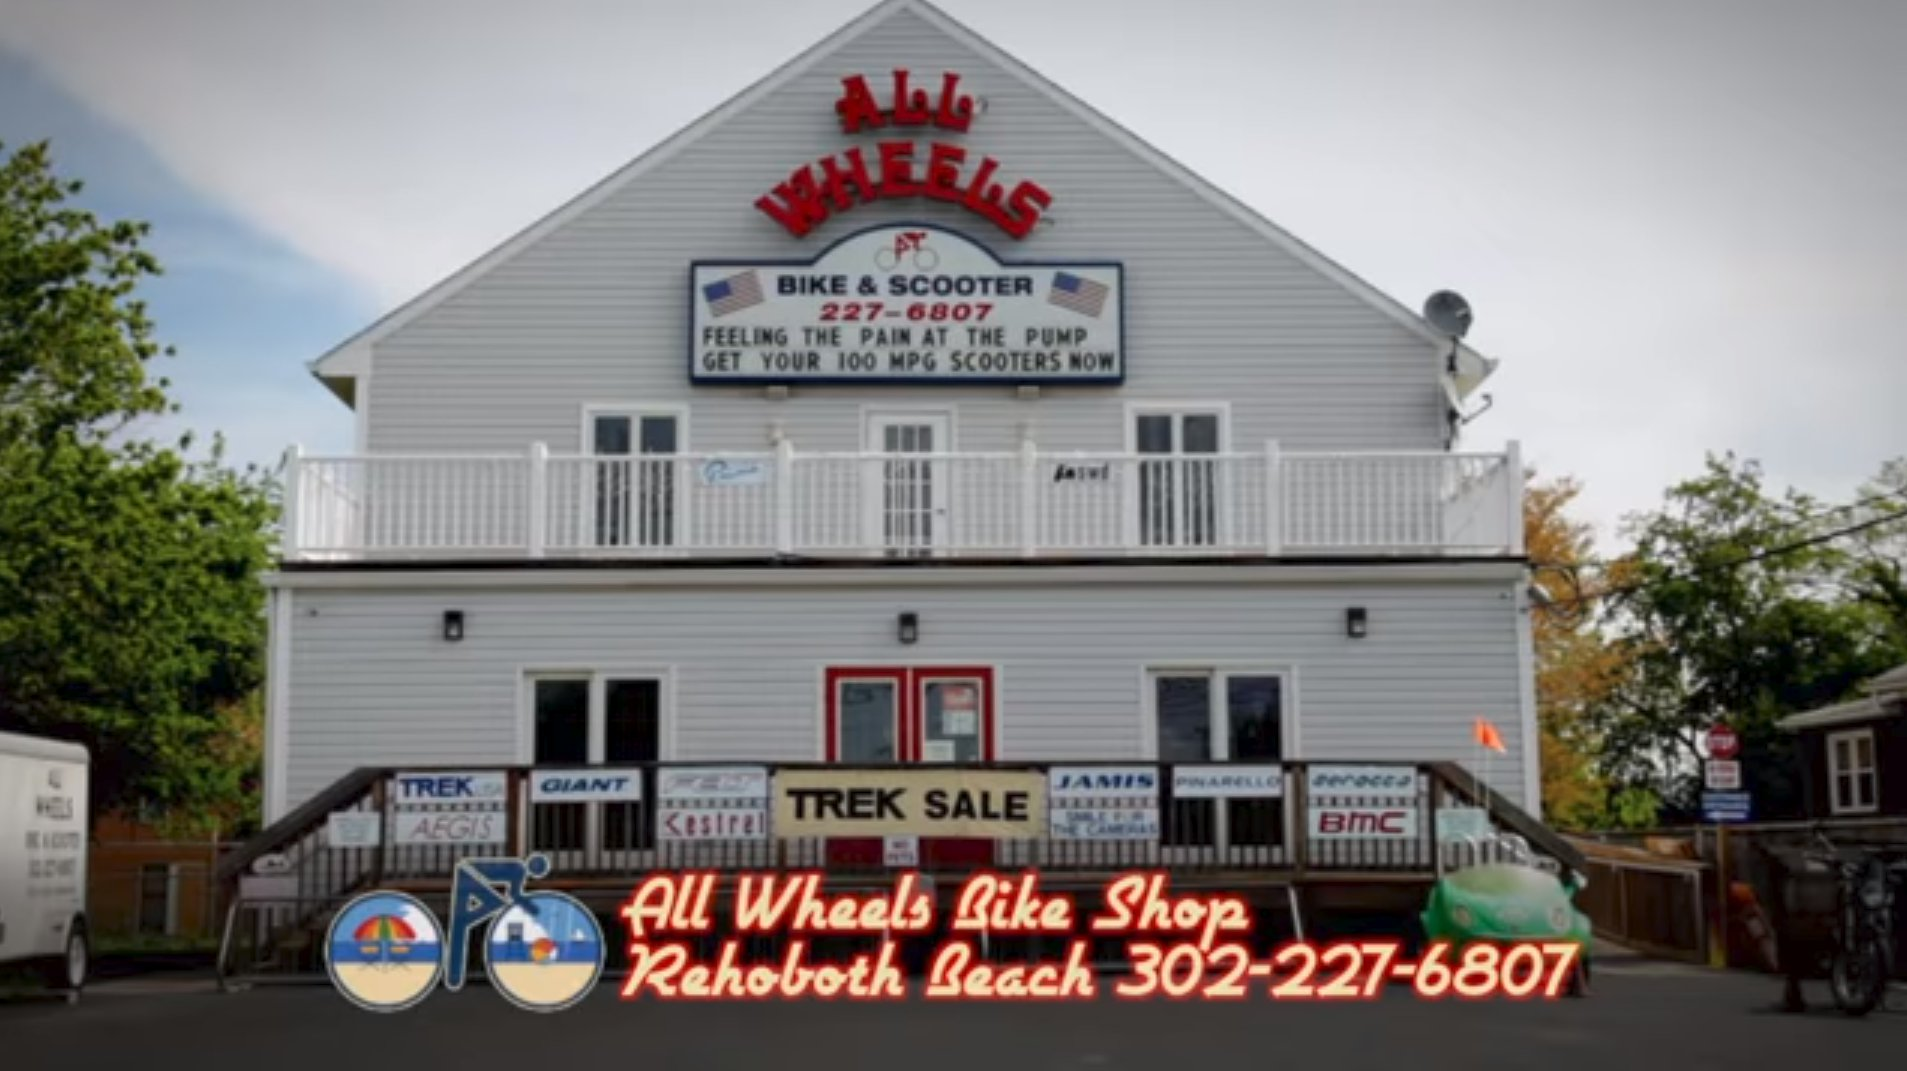 All Wheels Bike and Scooter Shop Rehoboth Beach Delaware